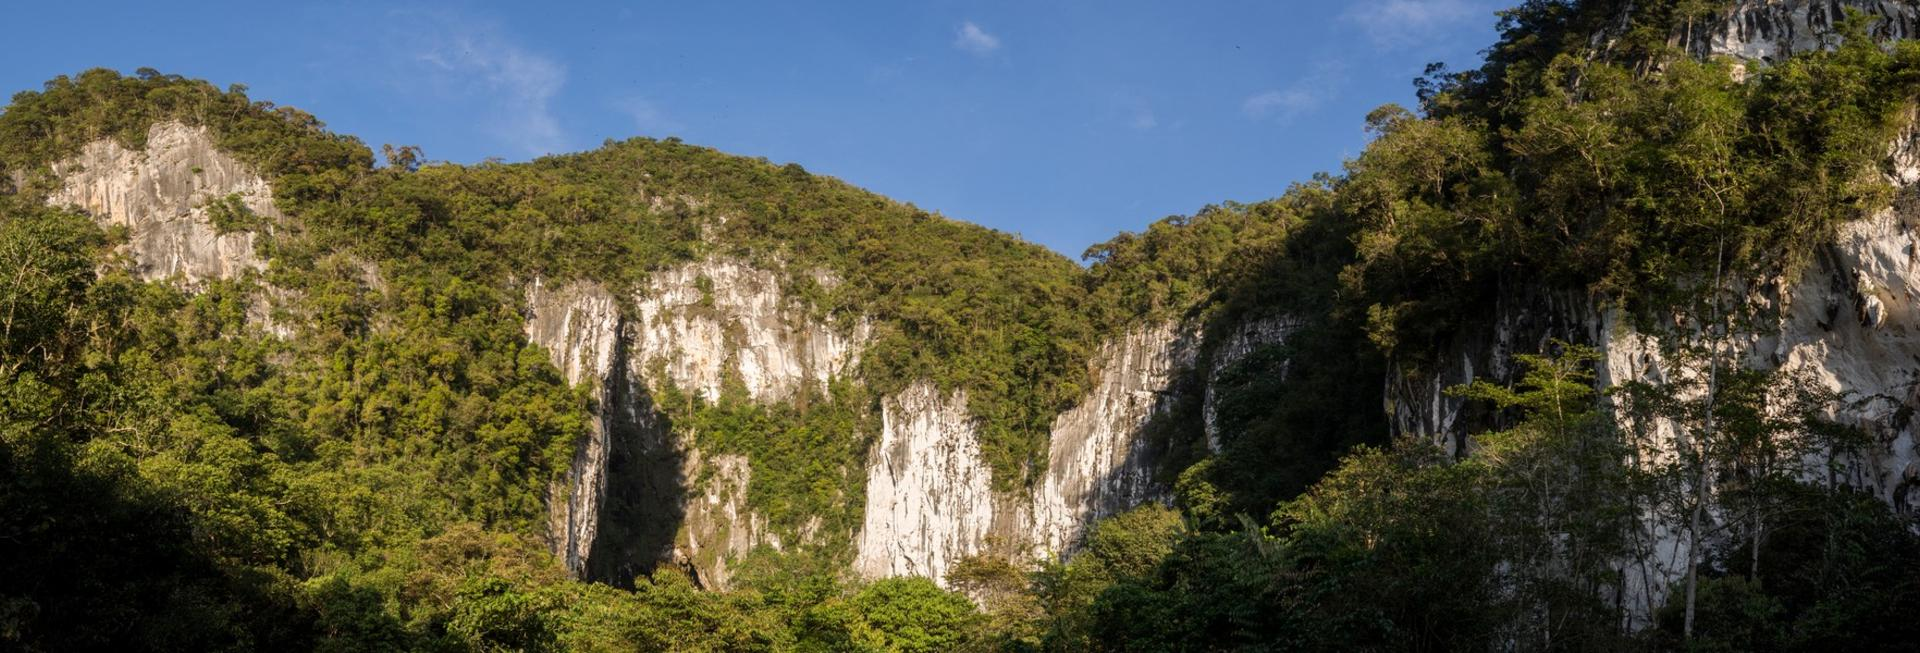 Caves, Mulu National Park